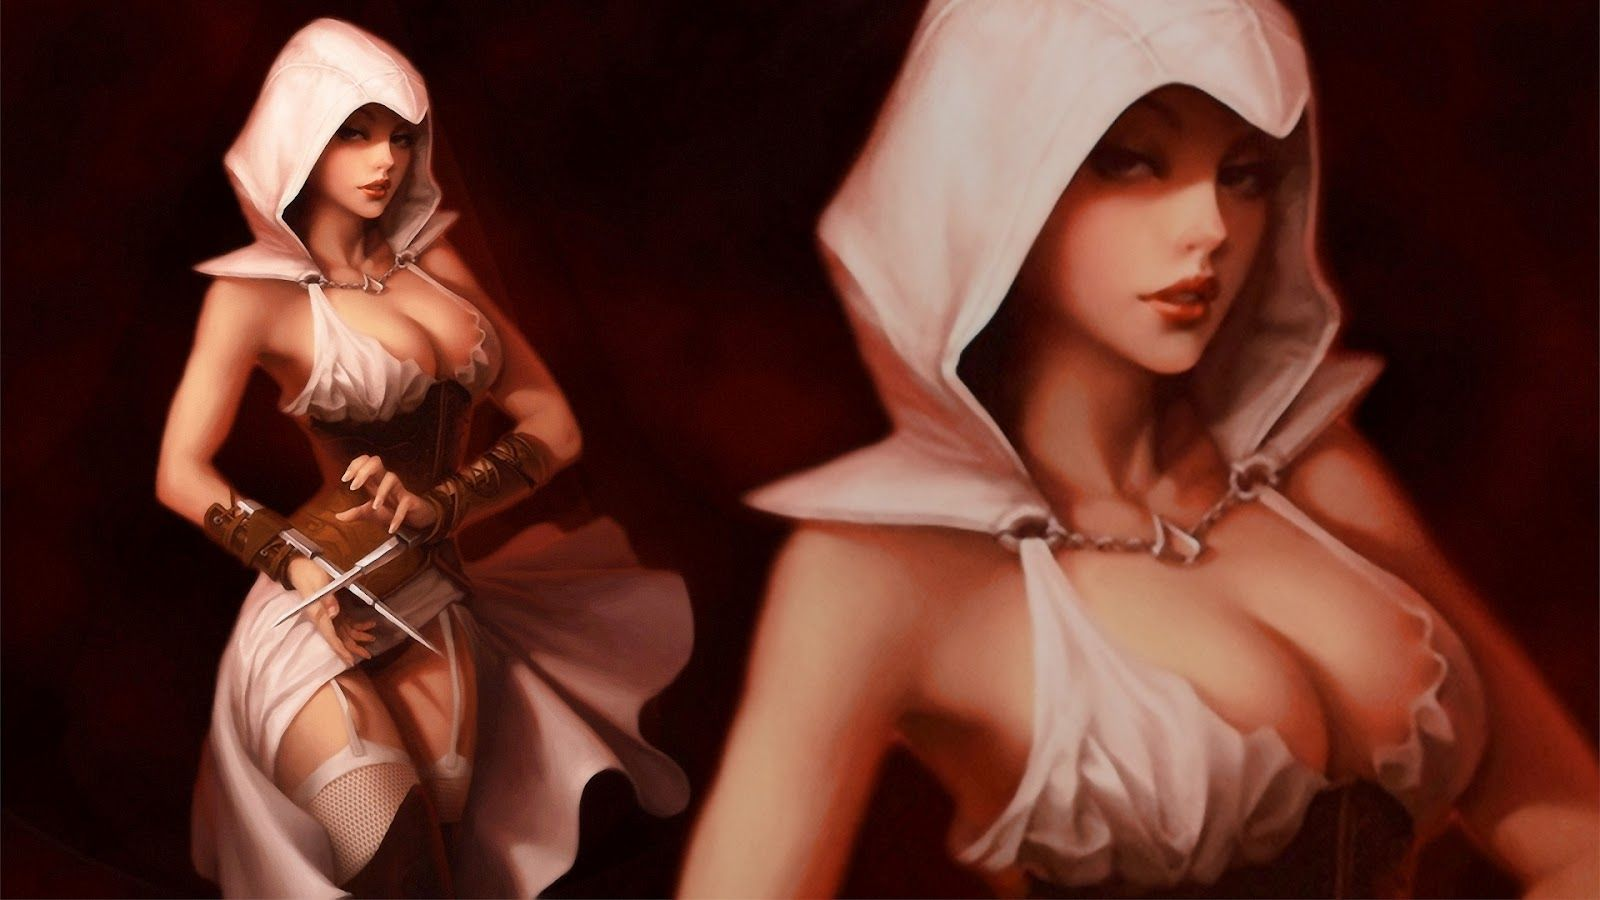 Assassin s creed women naked sexy picture